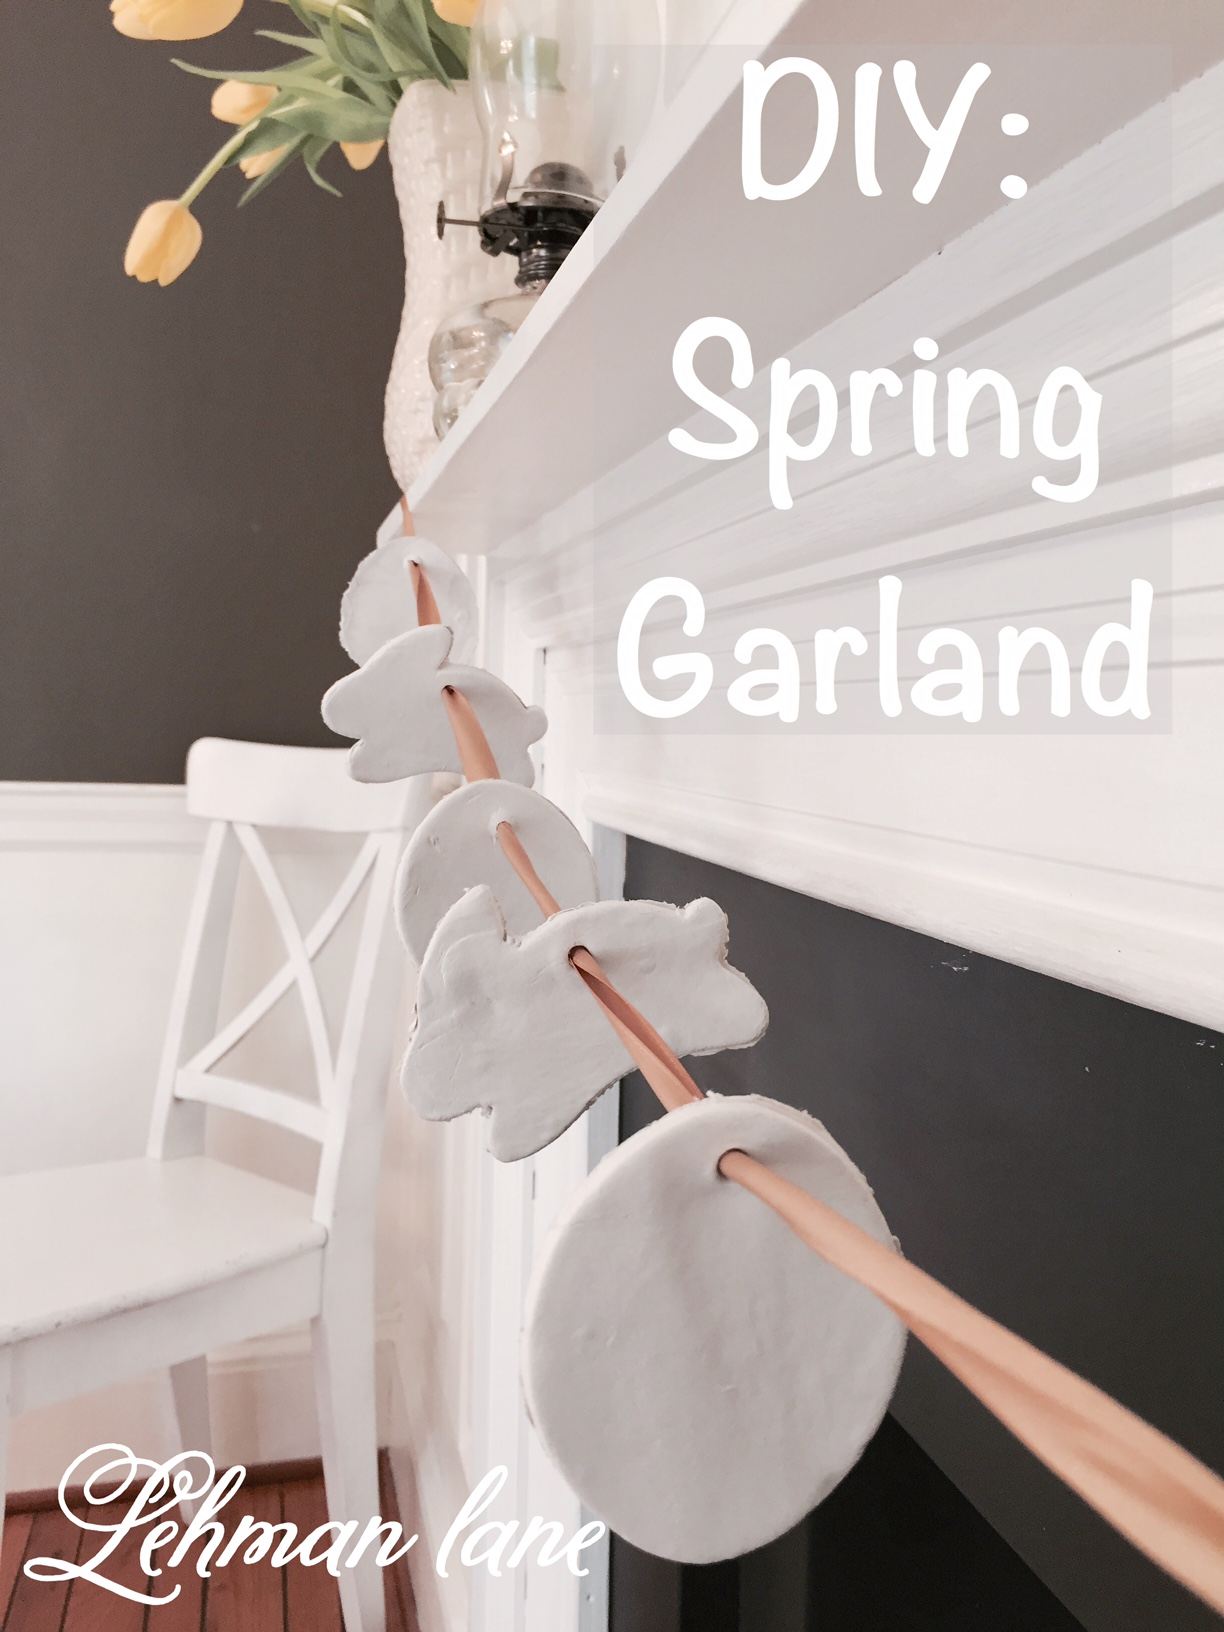 Sharing how to make a Spring Garland craft #diy #spring http://lehmanlane.net